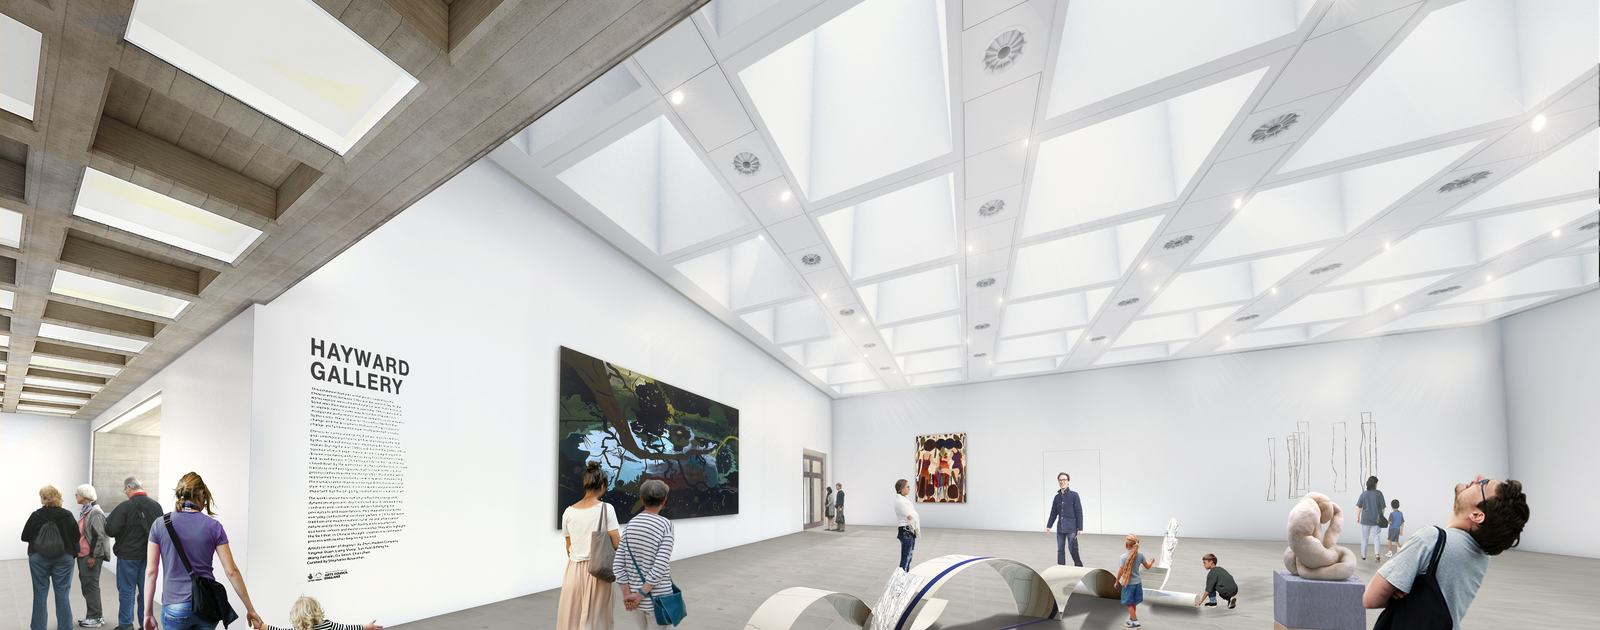 Artist's impression of the Hayward Gallery when it reopens in 2018 with new roof lights